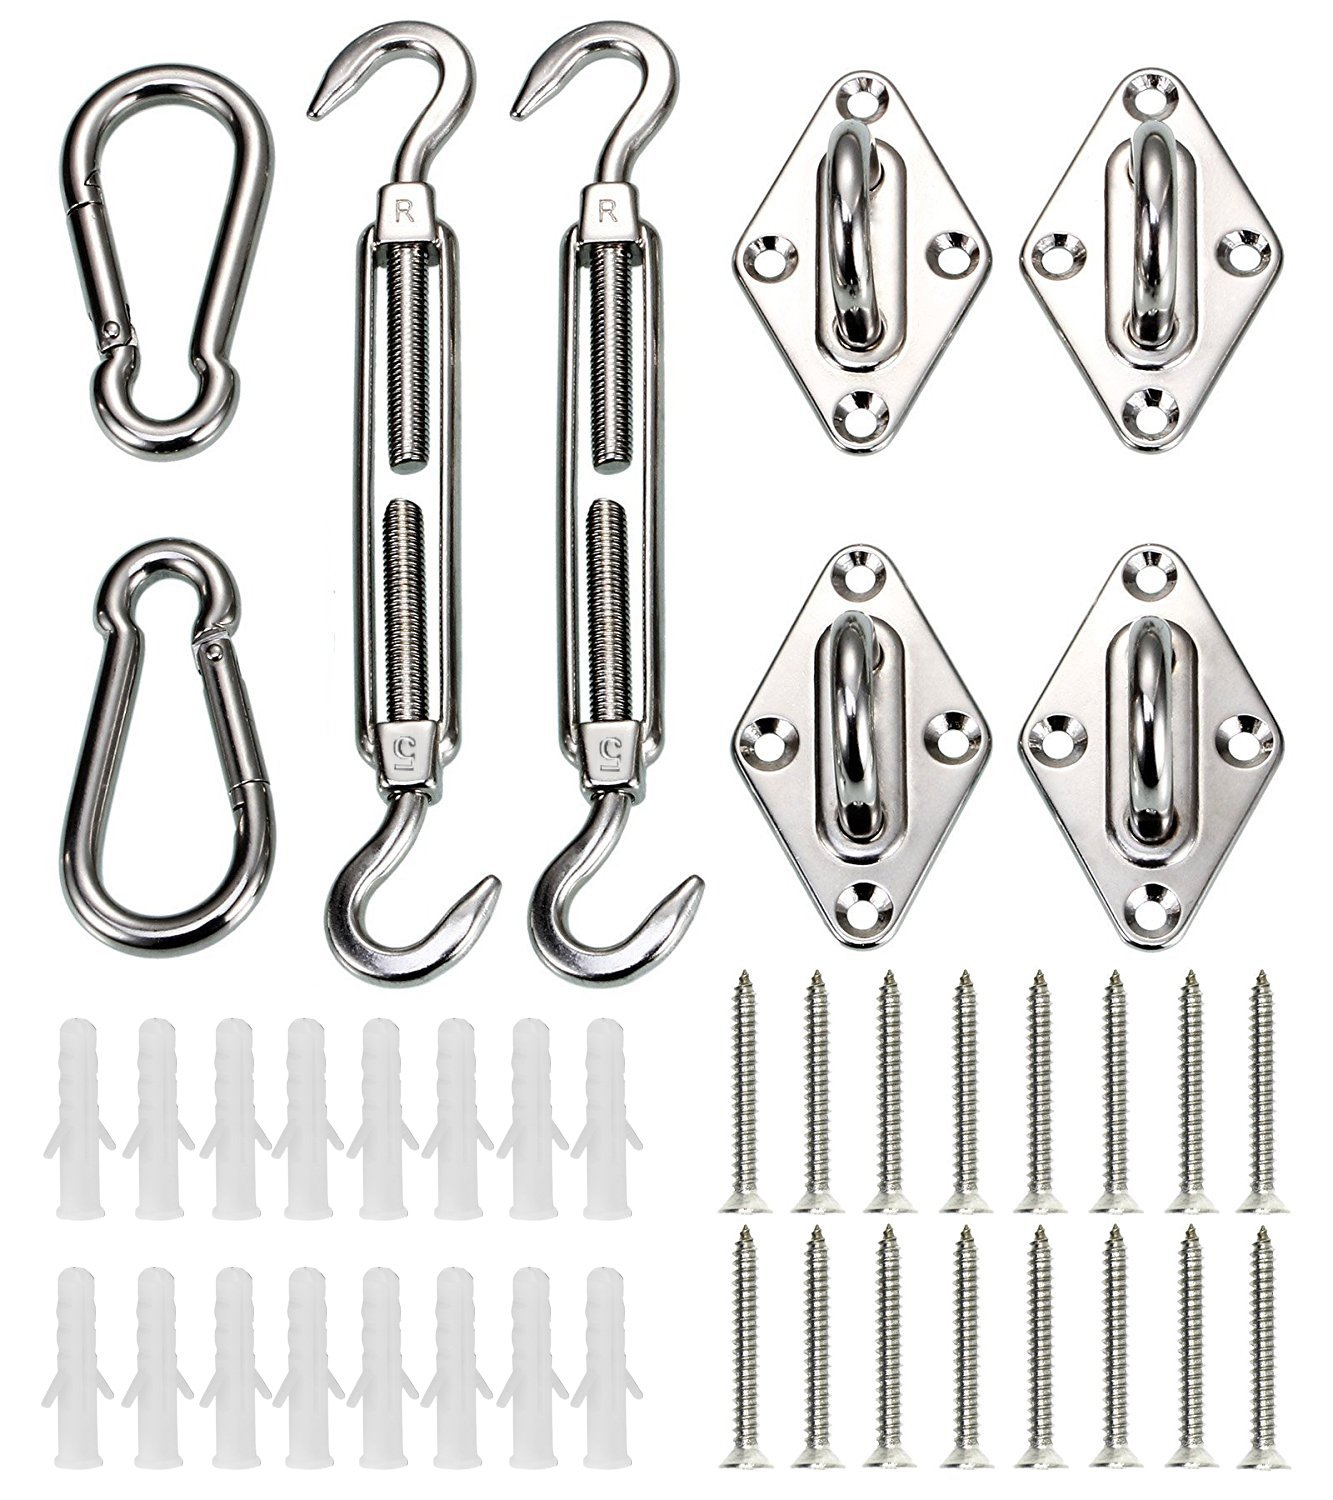 CARSINEL 316 stainless steel heavy duty shade sail hardware kit for rectangle sun shade sail installation